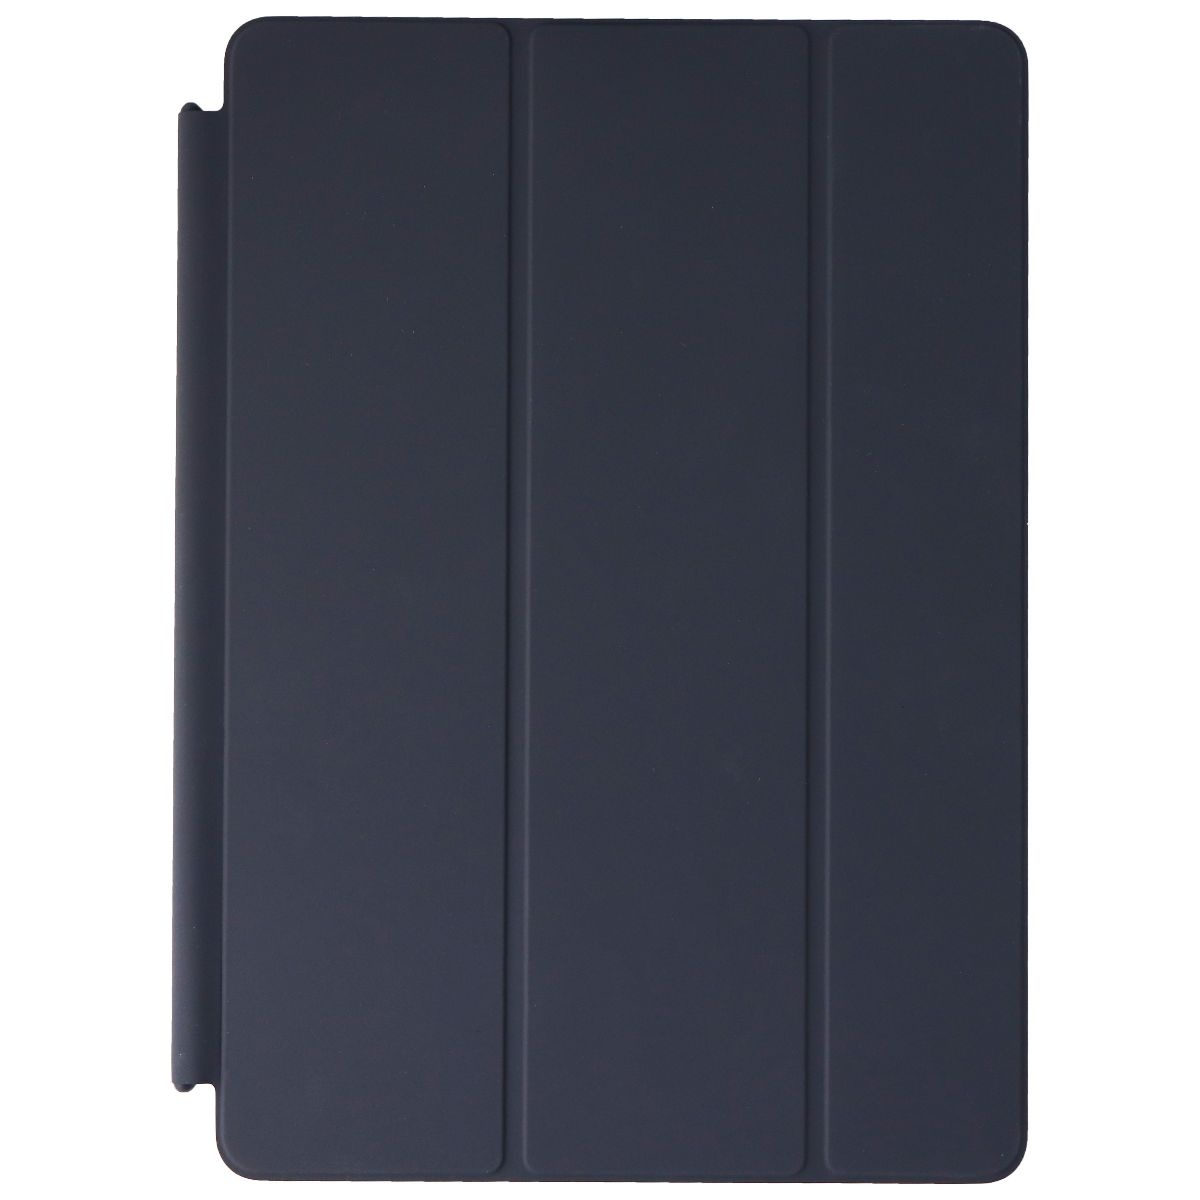 Apple Smart Cover for Apple iPad Air 10.5-inch - Charcoal Gray (MVQ22ZM/A)